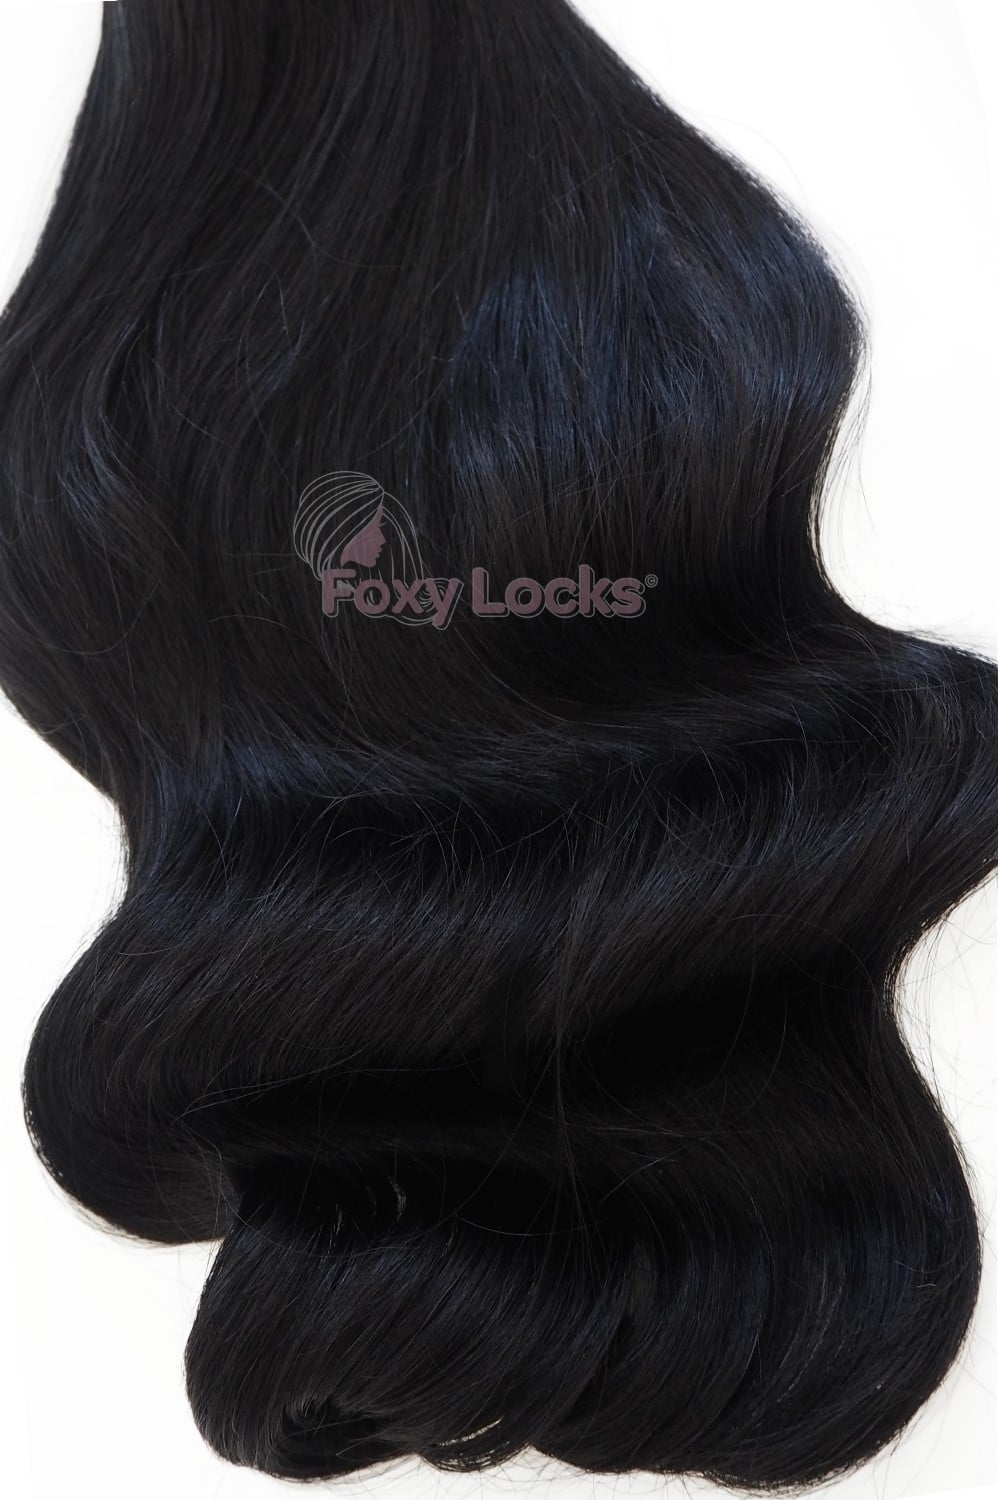 Jet Black 1 Superior 20 Clip In Human Hair Extensions 230g